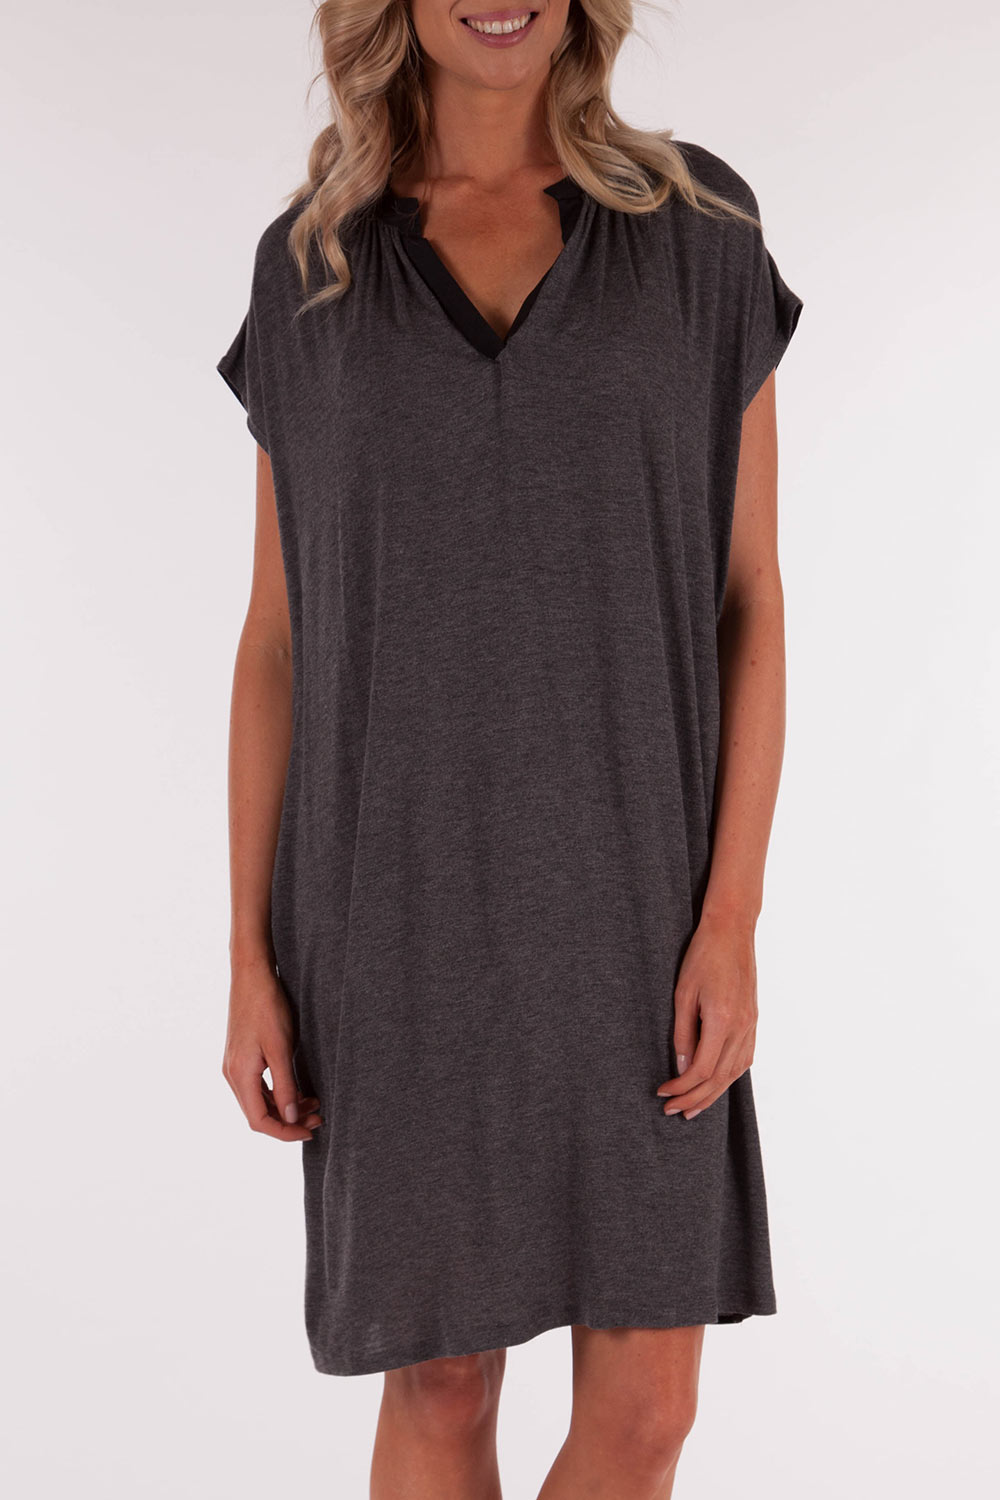 Metalicus Mana Contrast Tunic Dress